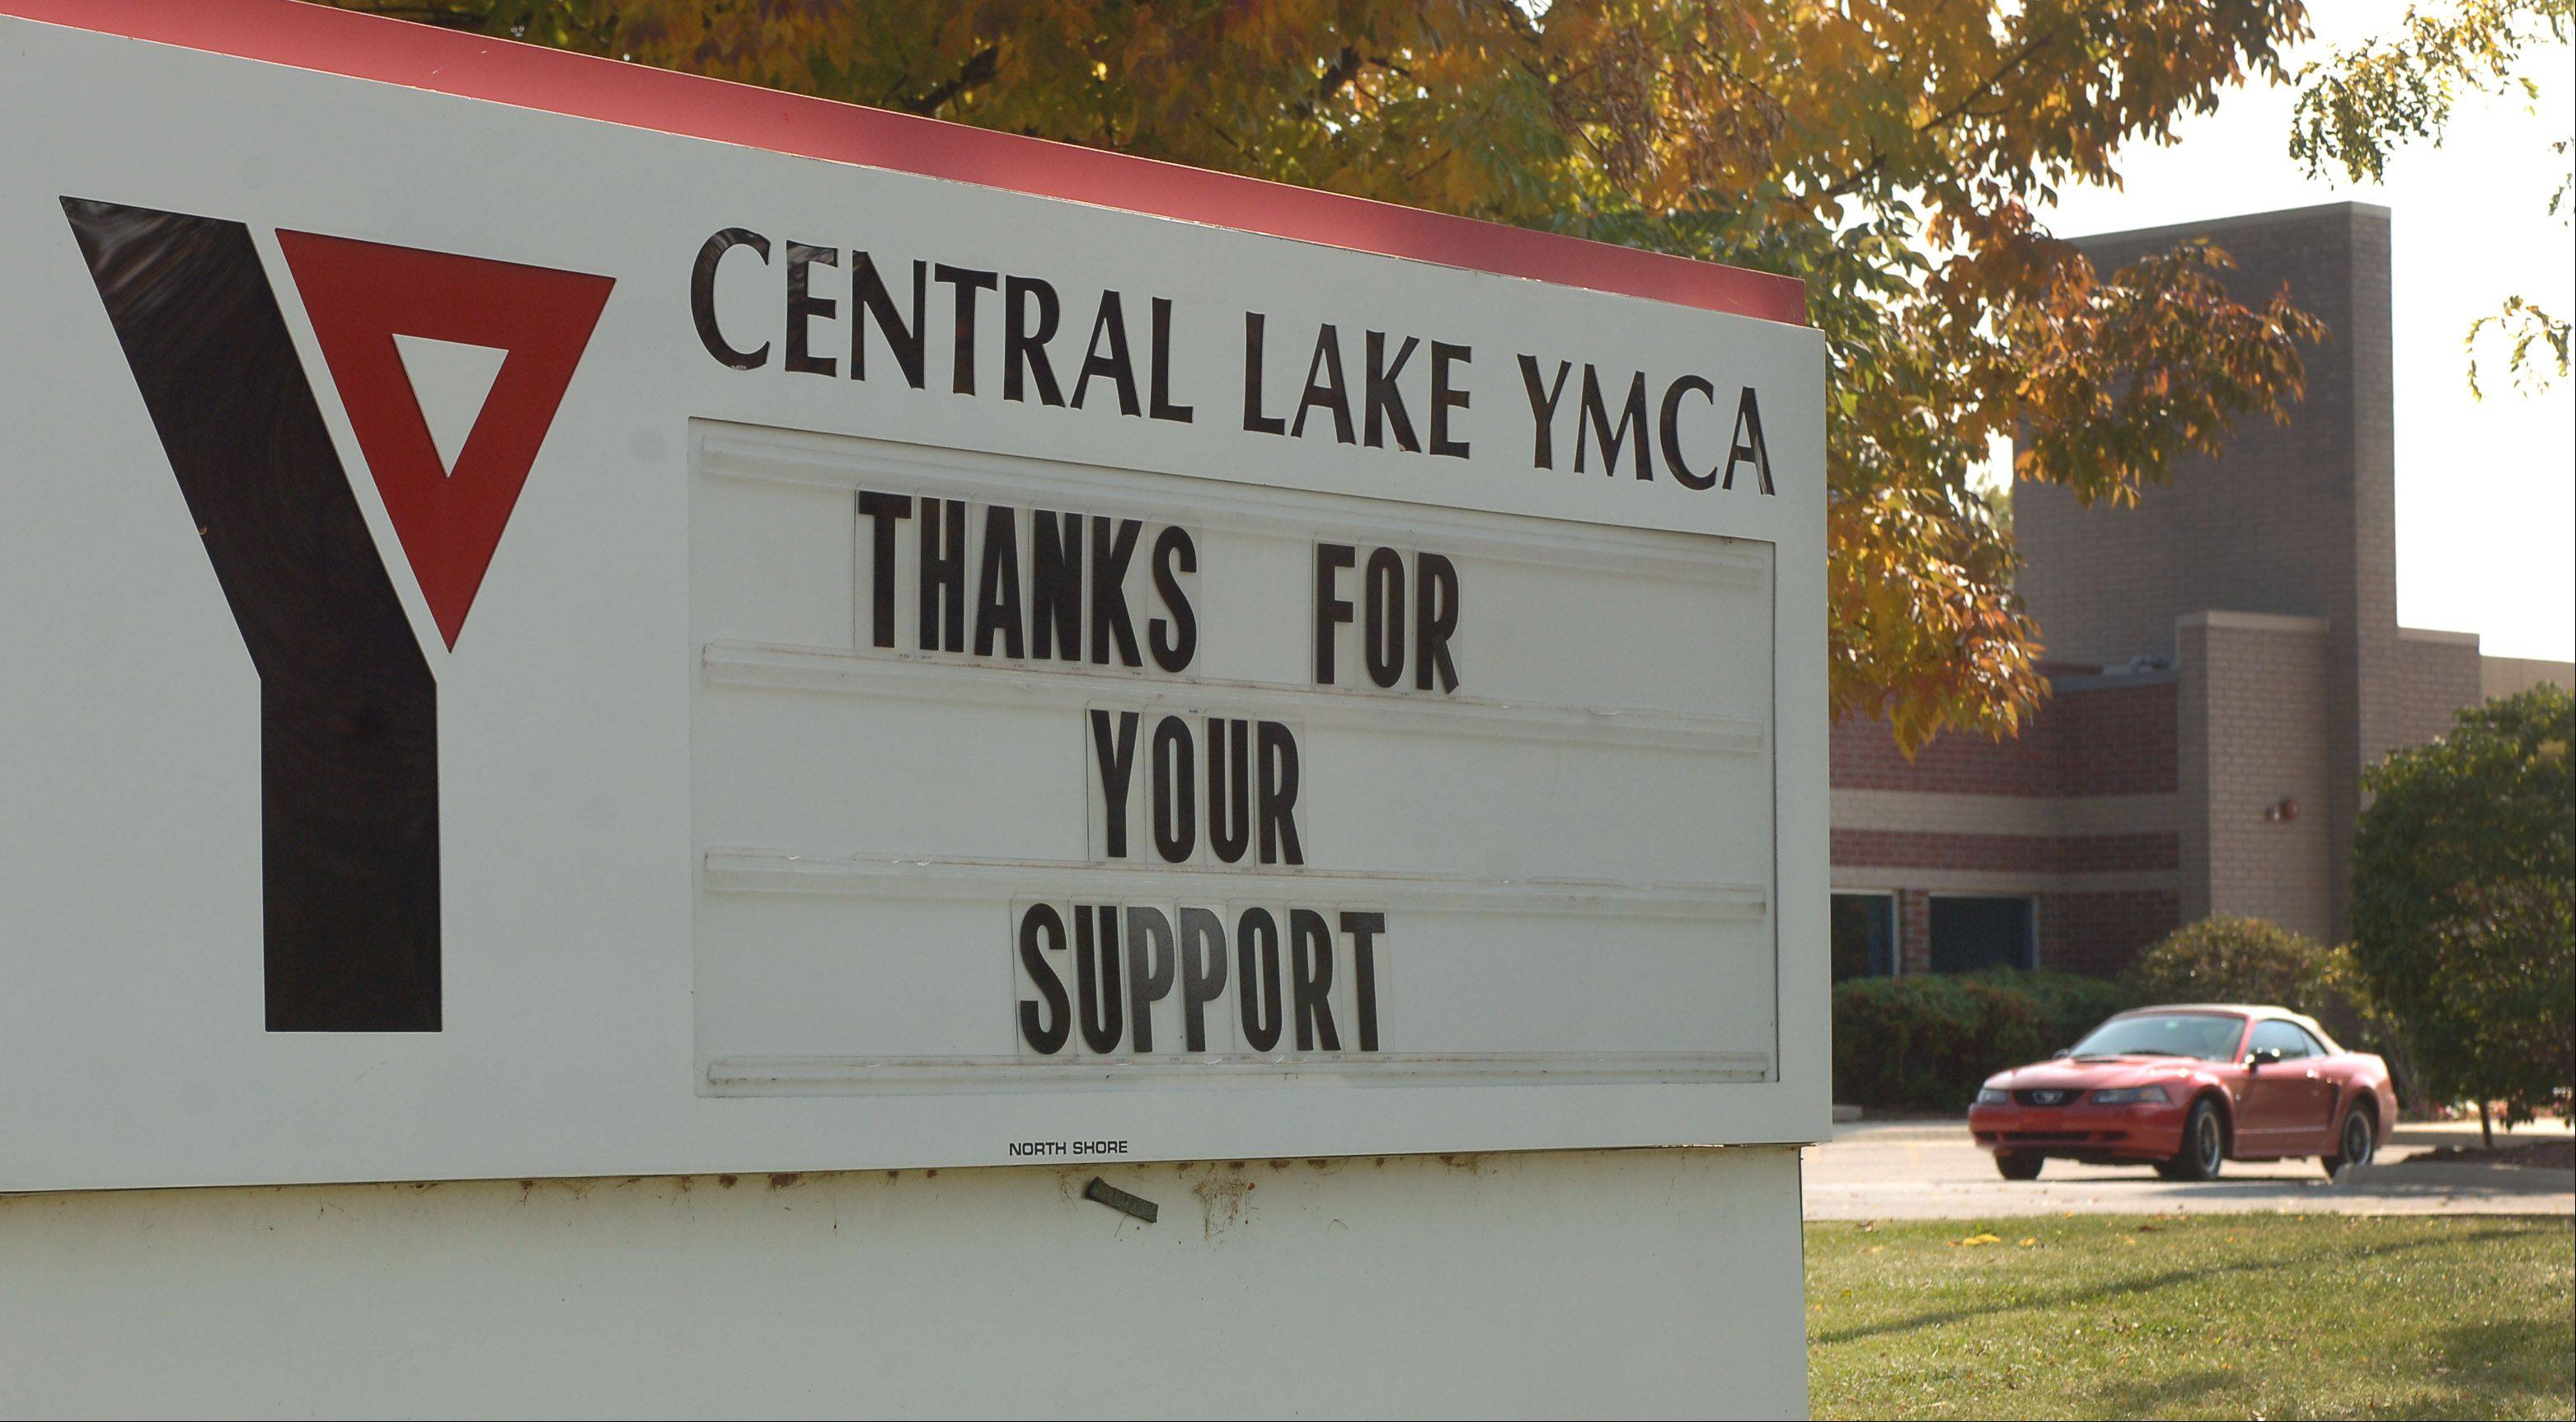 A thank-you message was posted earlier this month at the Central Lake YMCA in Vernon Hills after its Oct. 31 closing was announced. A tentative agreement for the Vernon Hills Park District to operate the facility has been reached. YMCA officials announced Wednesday the Waukegan facility will remain open through the end of the year.